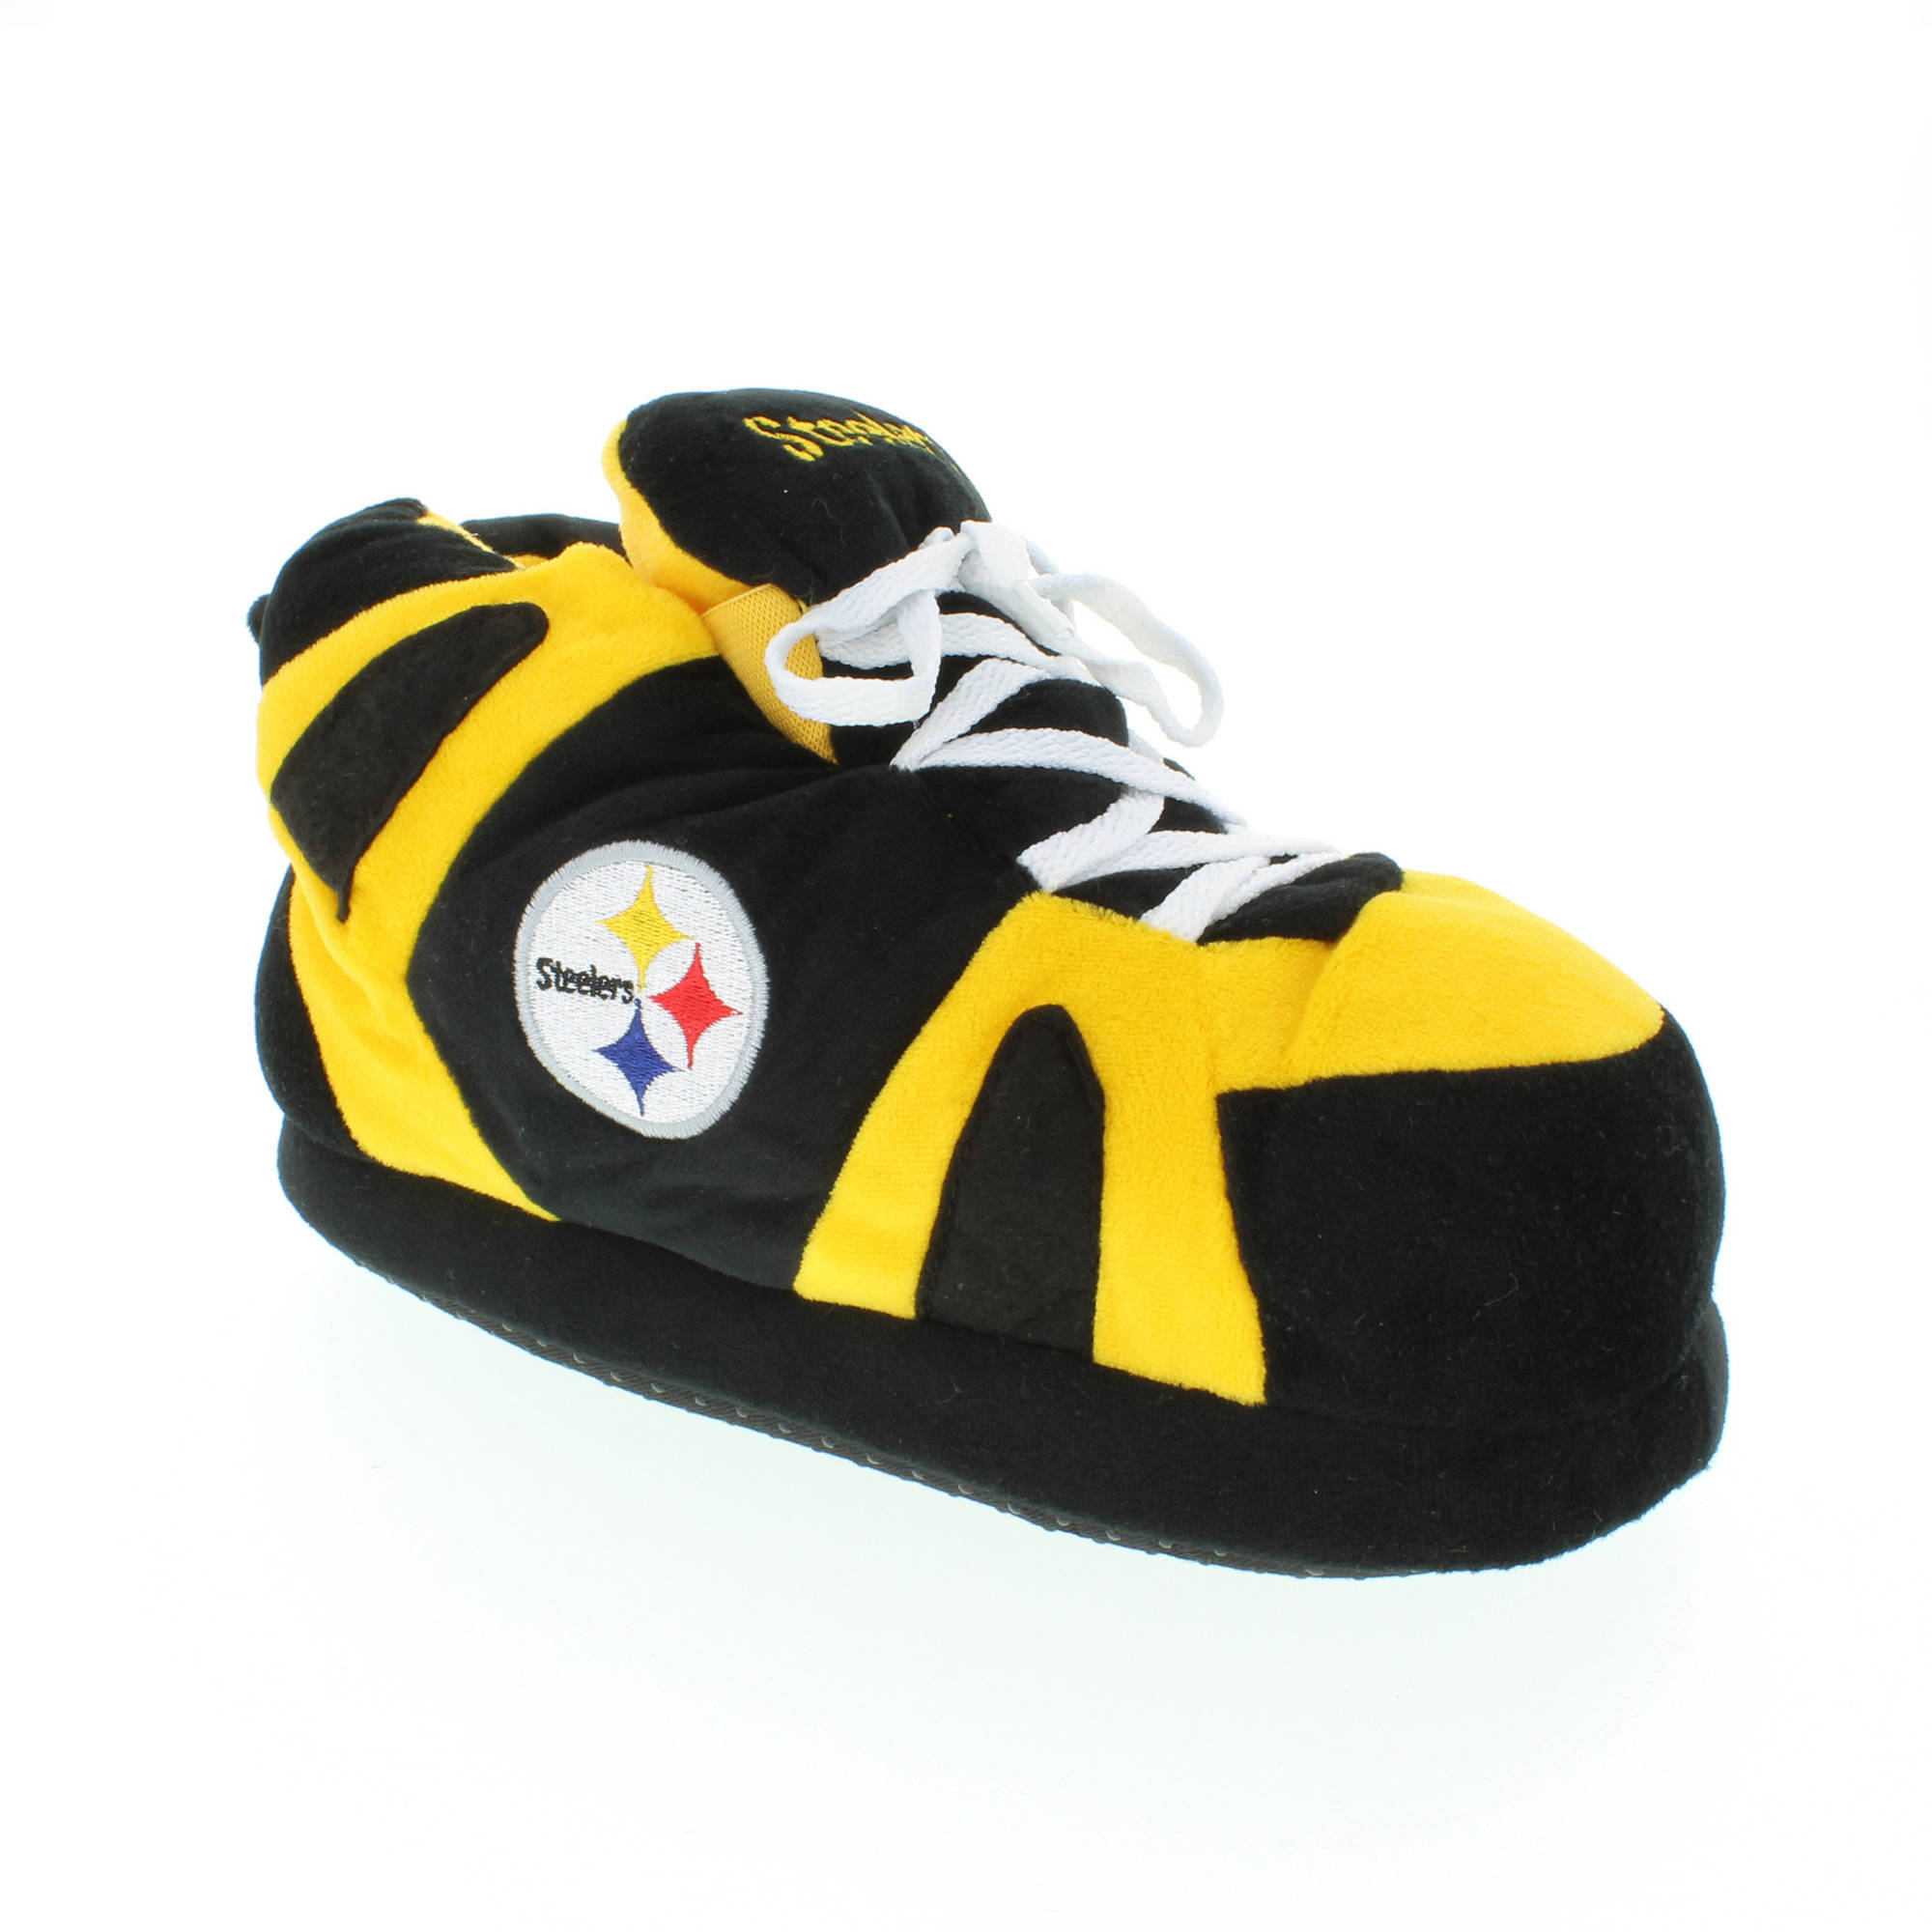 Comfy Feet - NFL Pittsburgh Steelers Slipper